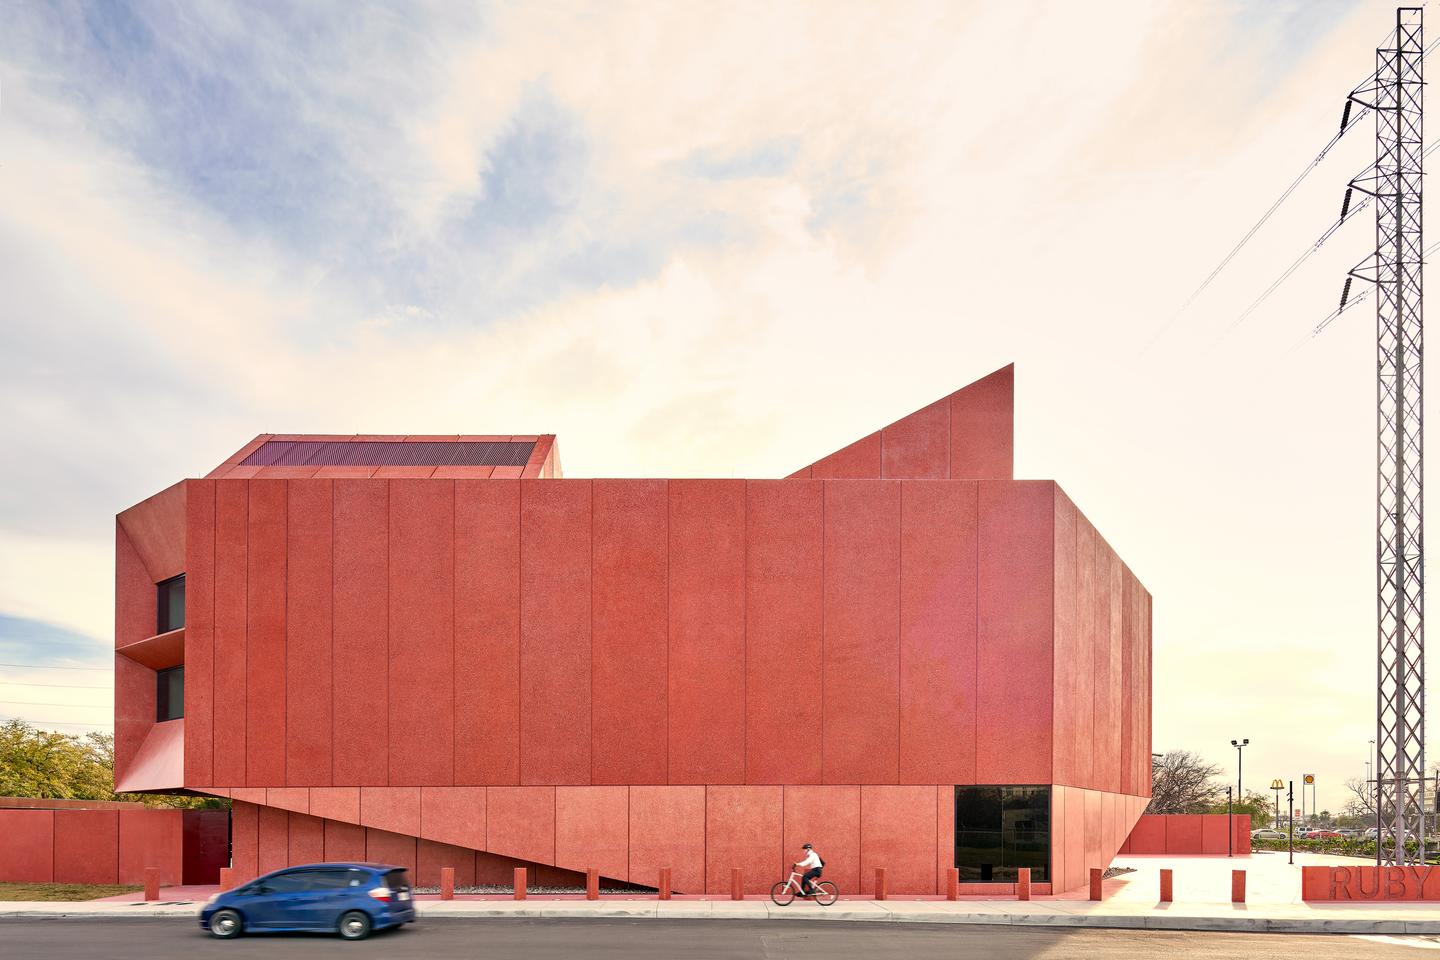 Ruby City is an arts center in San Antonio, Texas. The proejct was completed in 2019